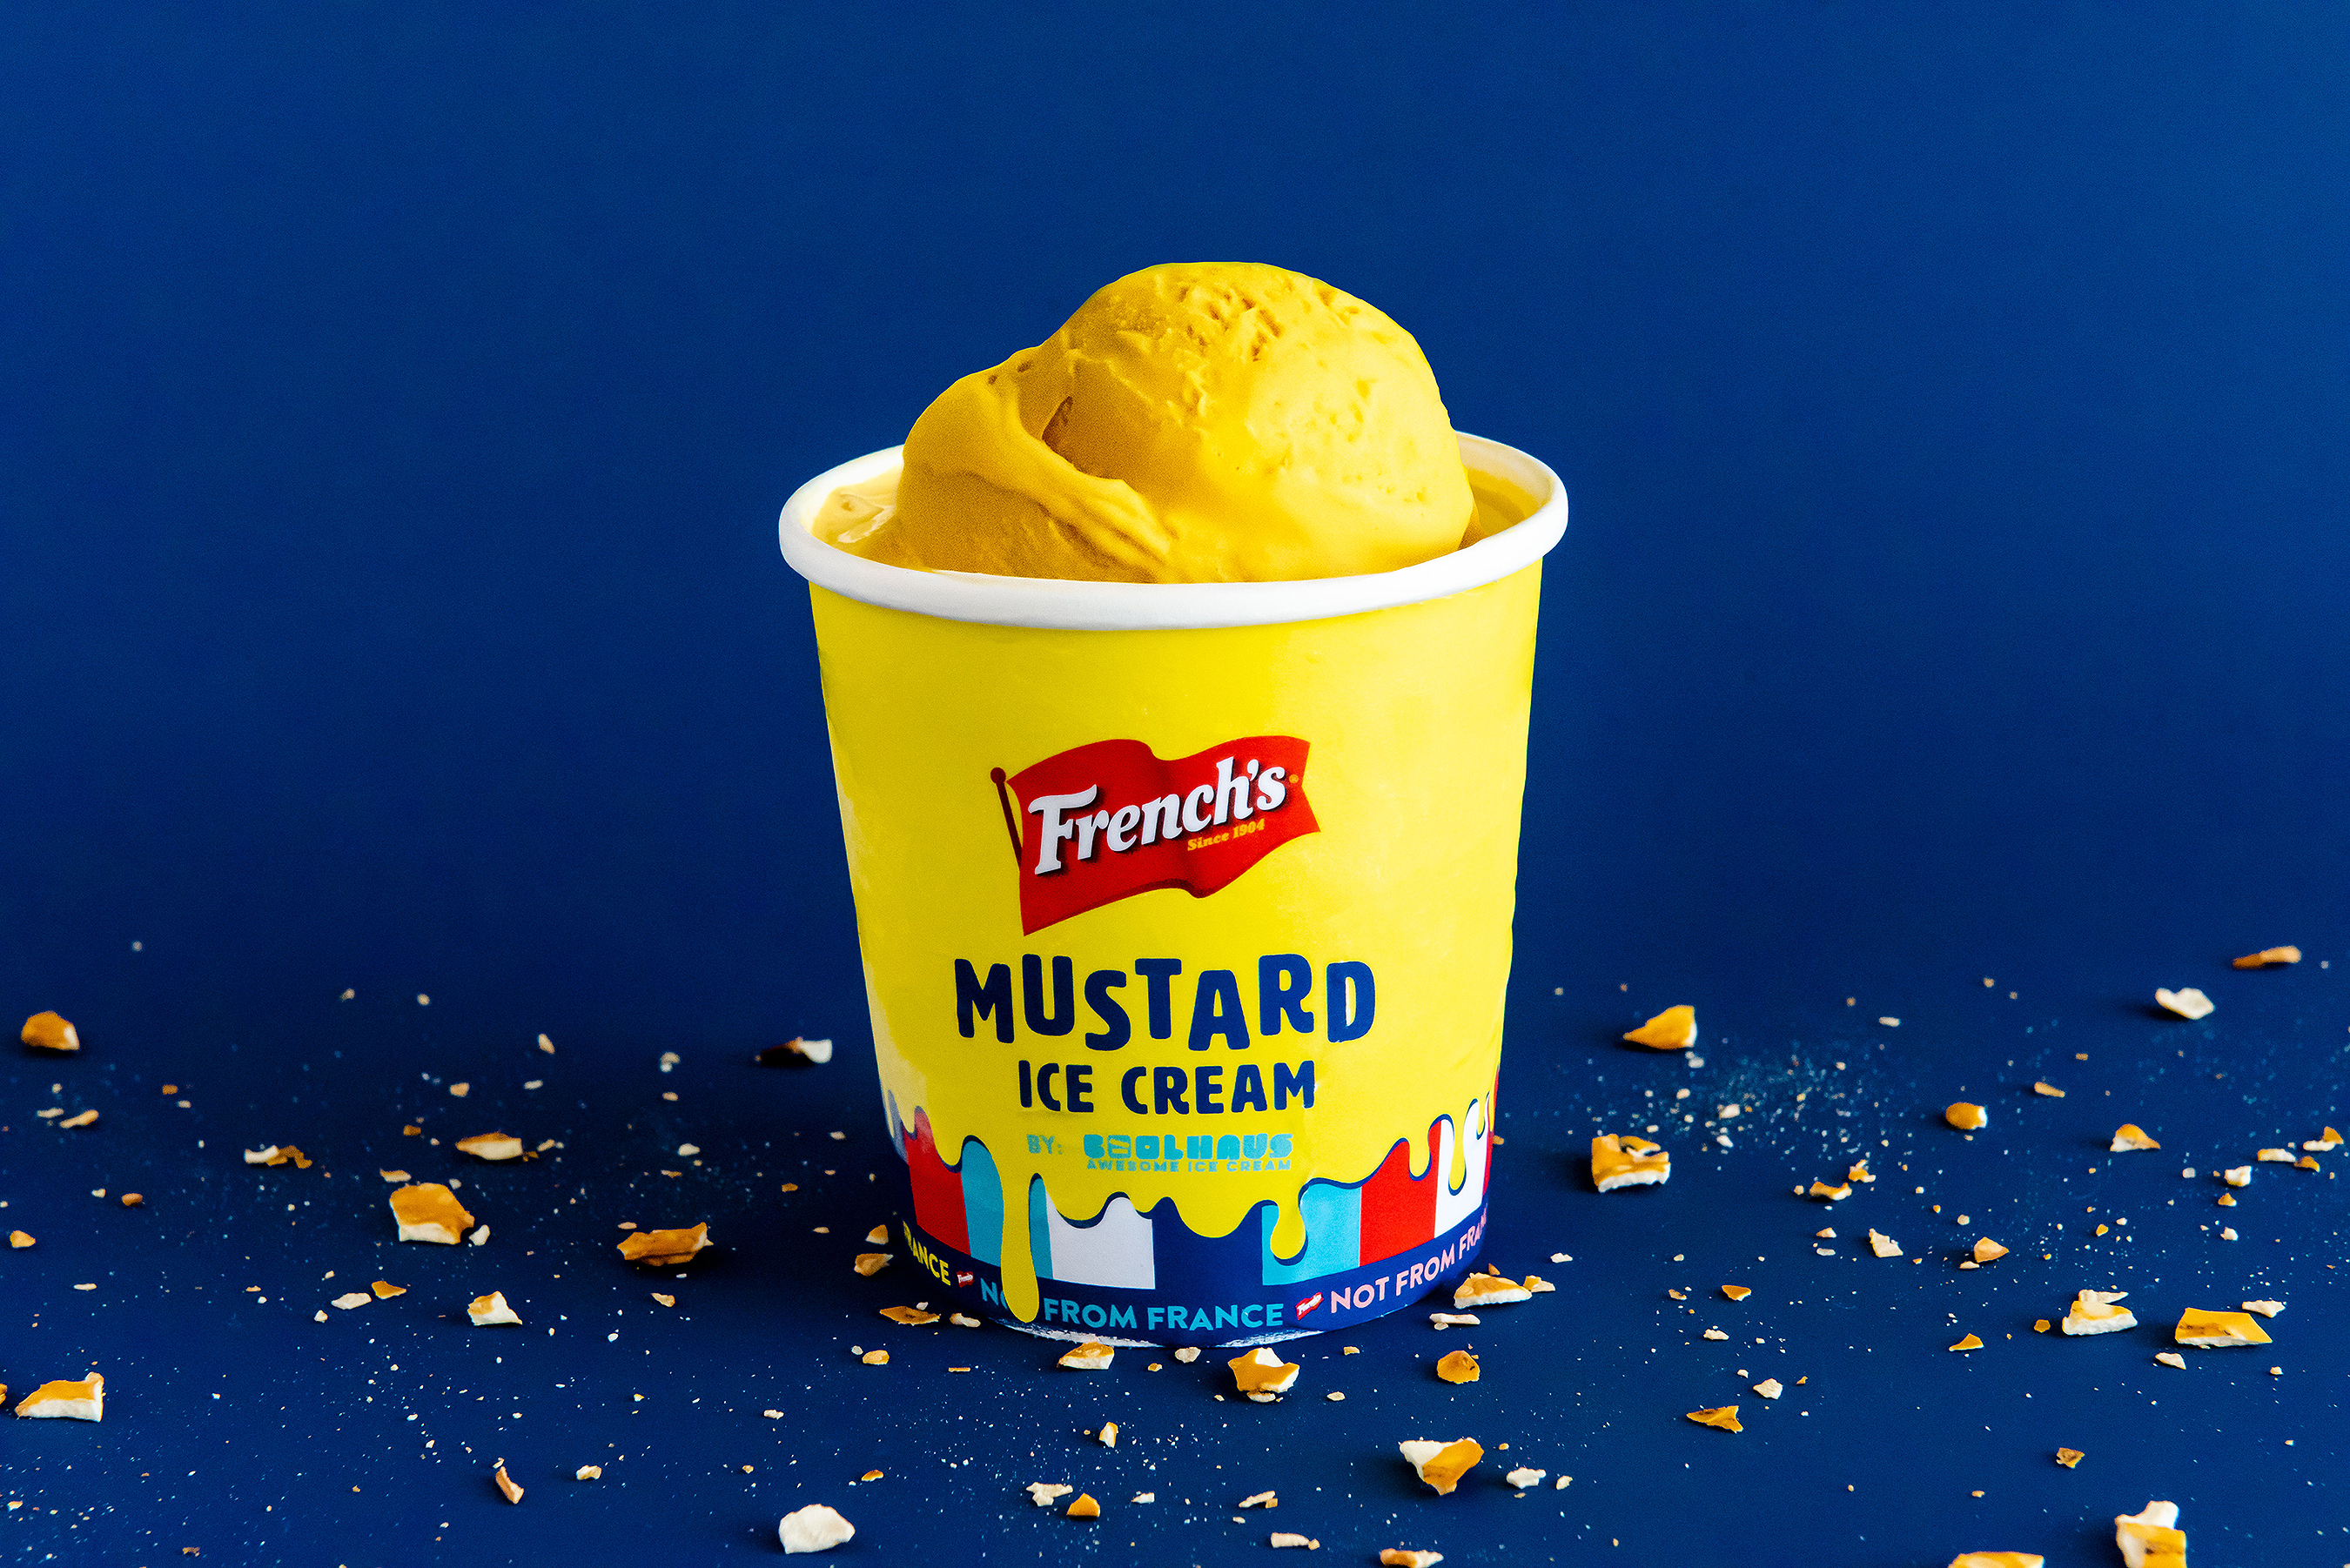 French's Created a Mustard-Flavored Ice Cream and We Reluctantly Tasted It